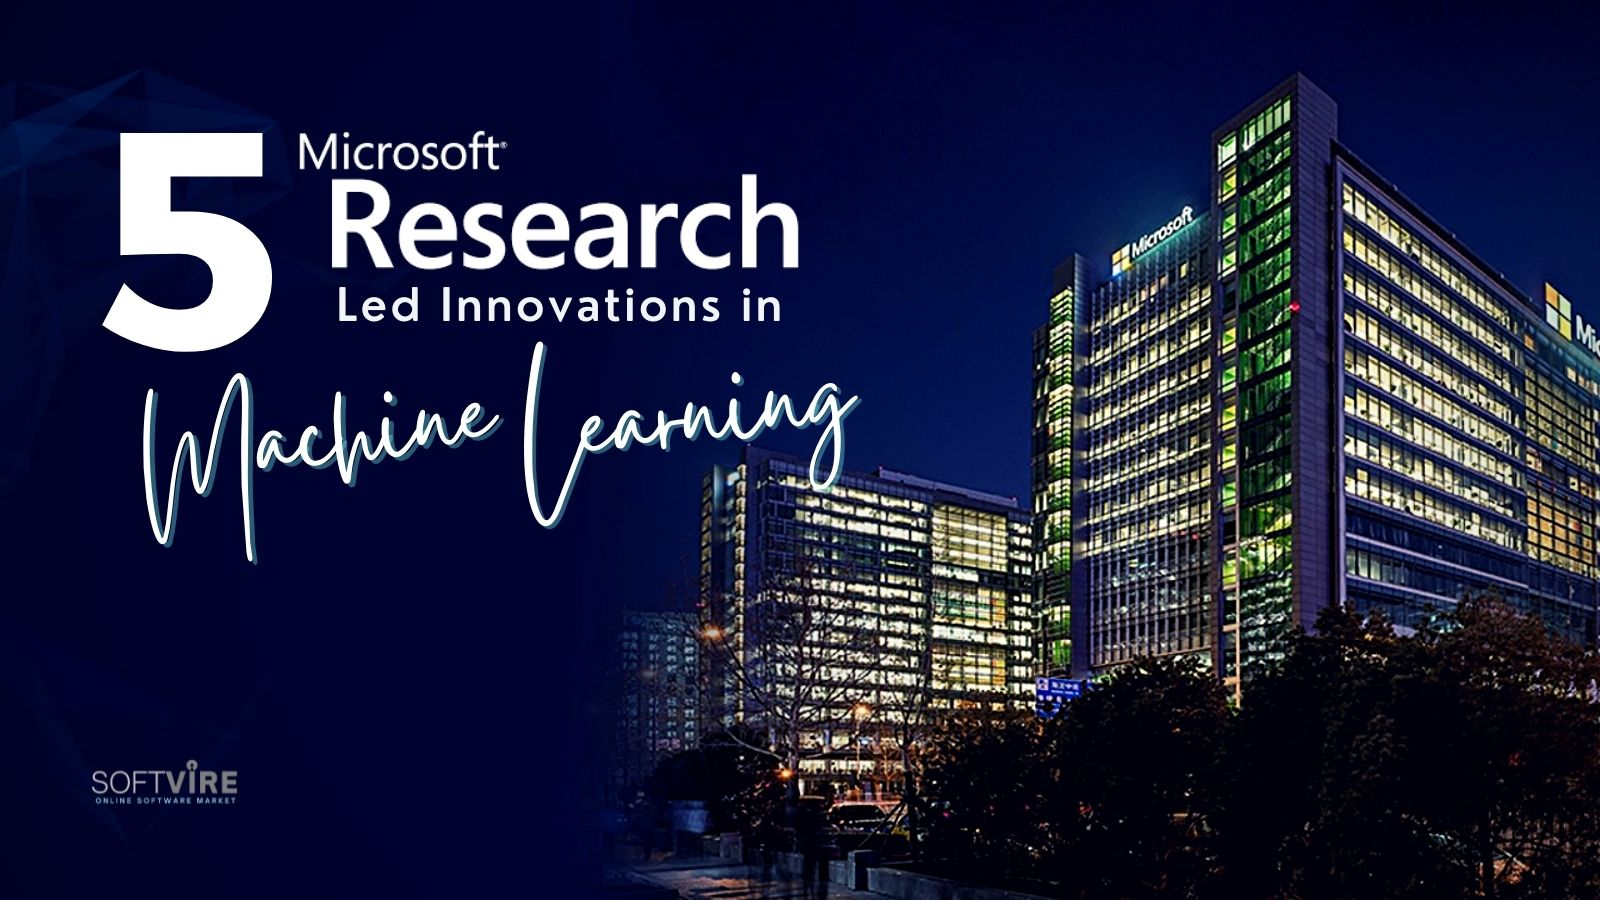 5 Microsoft Research Led Innovation in Machine Learning - Twitter - Softvire Global Market